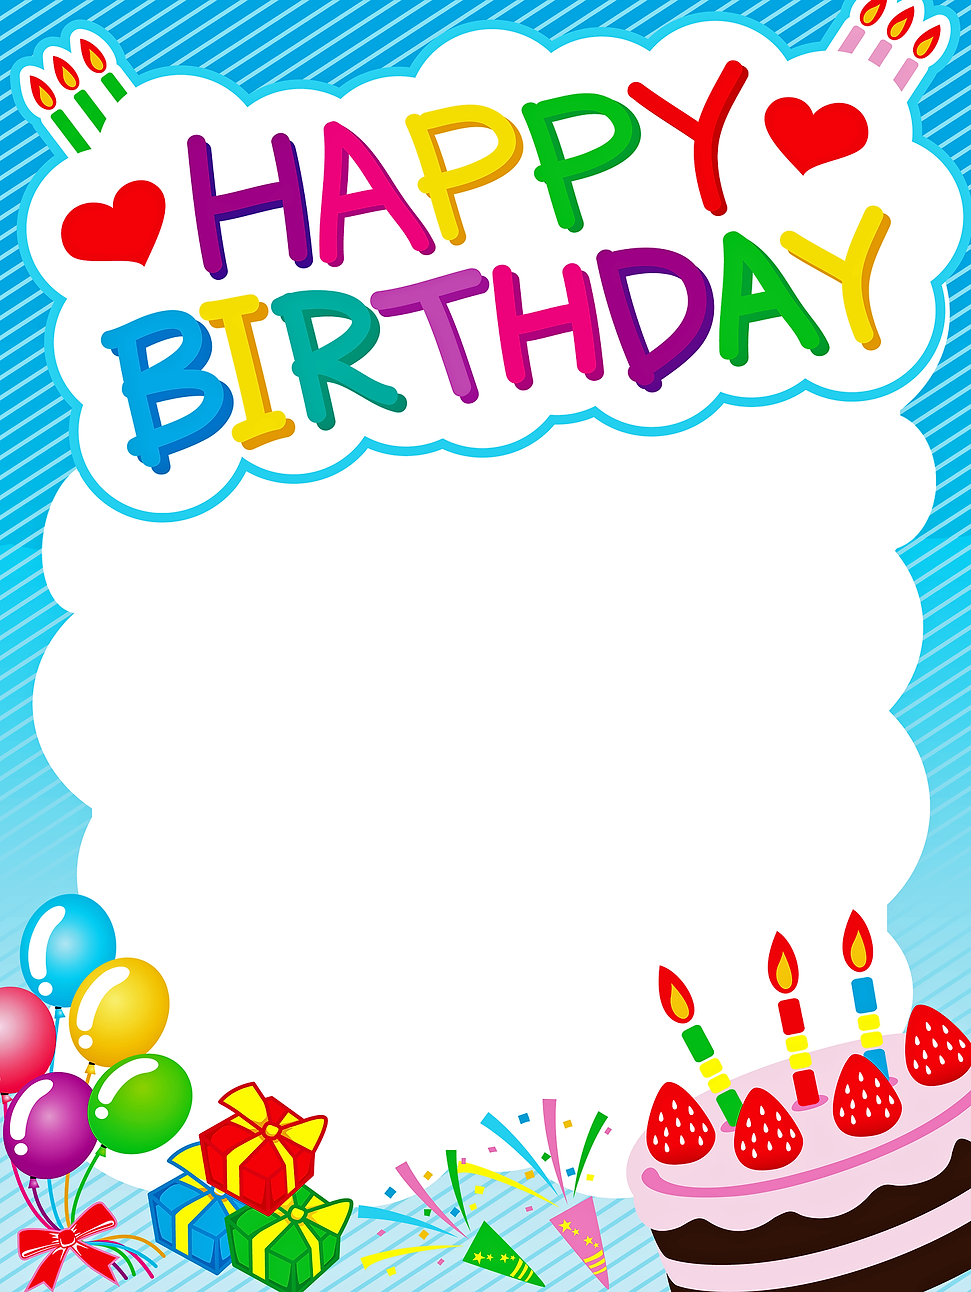 birthday-background-4305333_1920.png